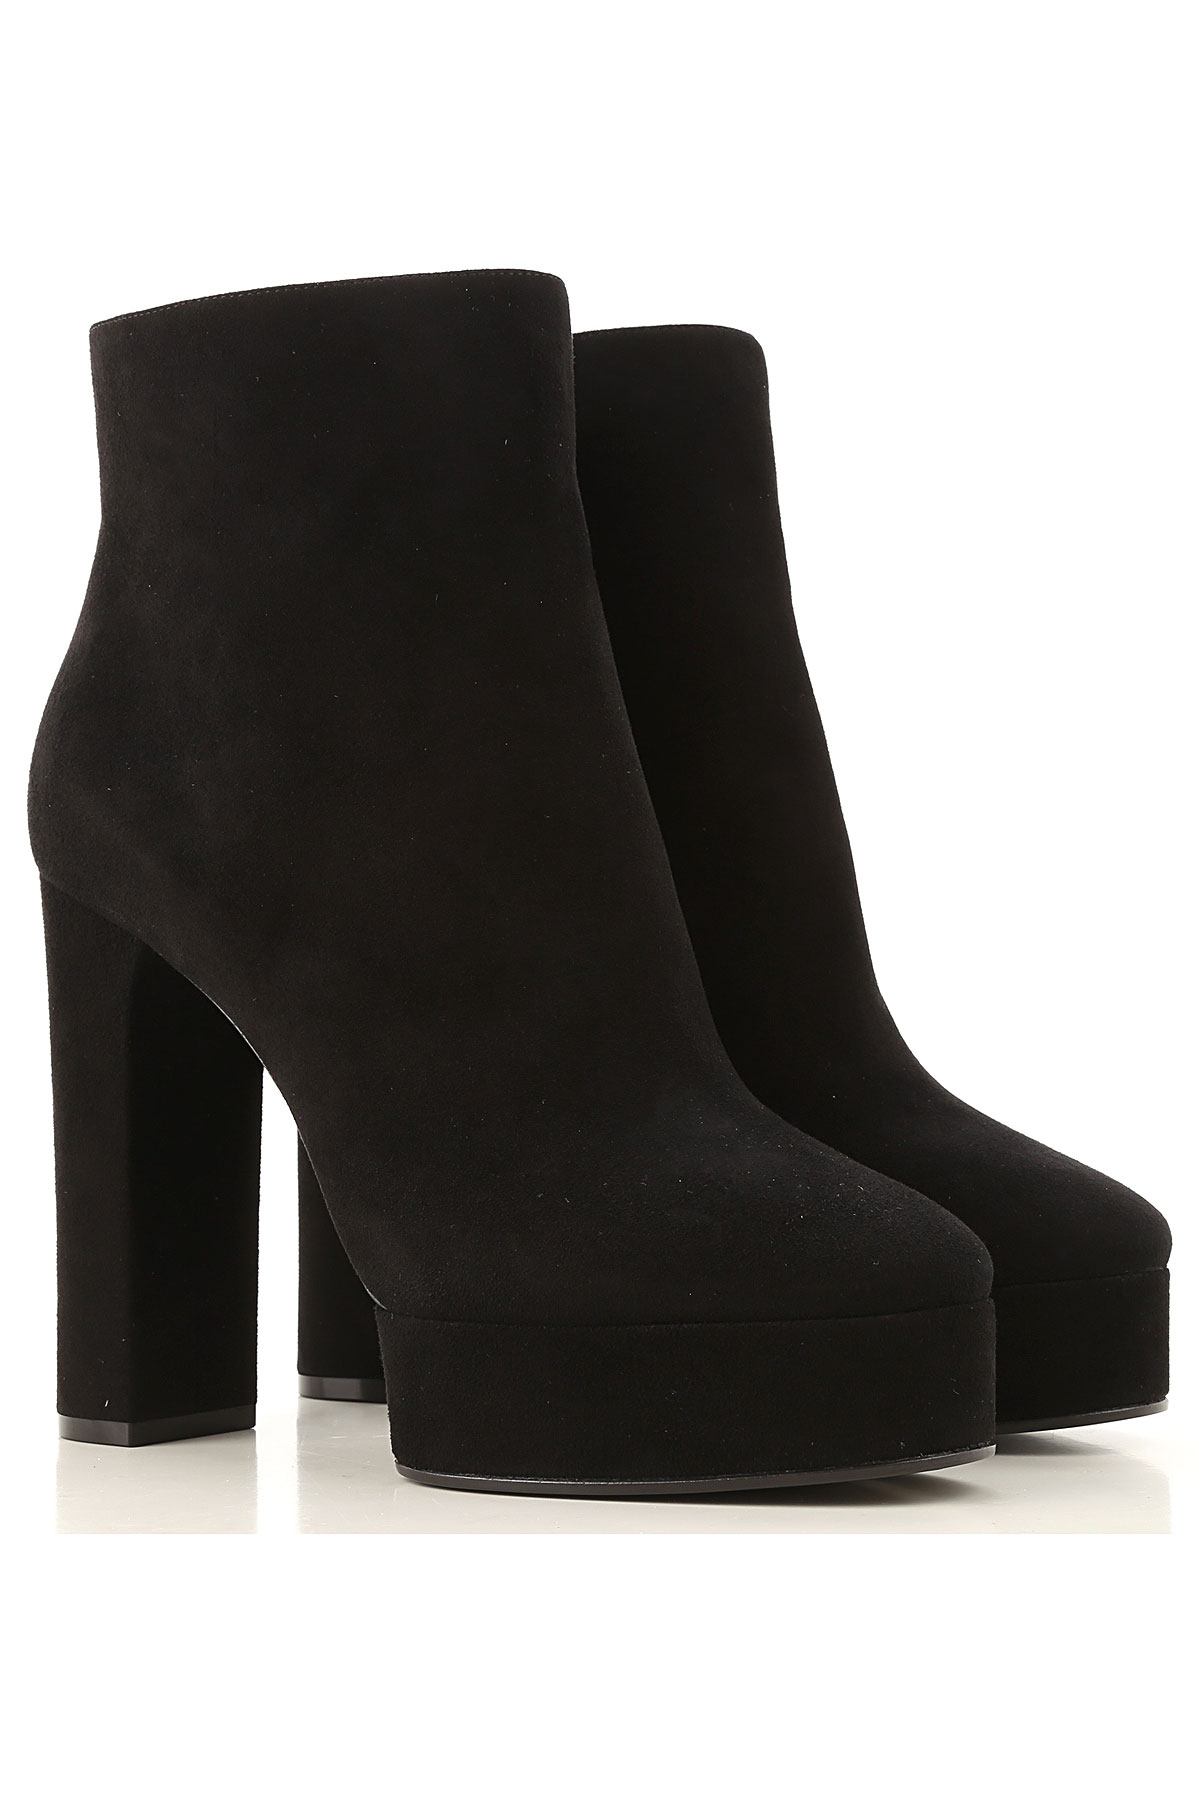 Casadei Boots for Women, Booties On Sale, Black, Suede leather, 2019, 10 7 8 9 9.5